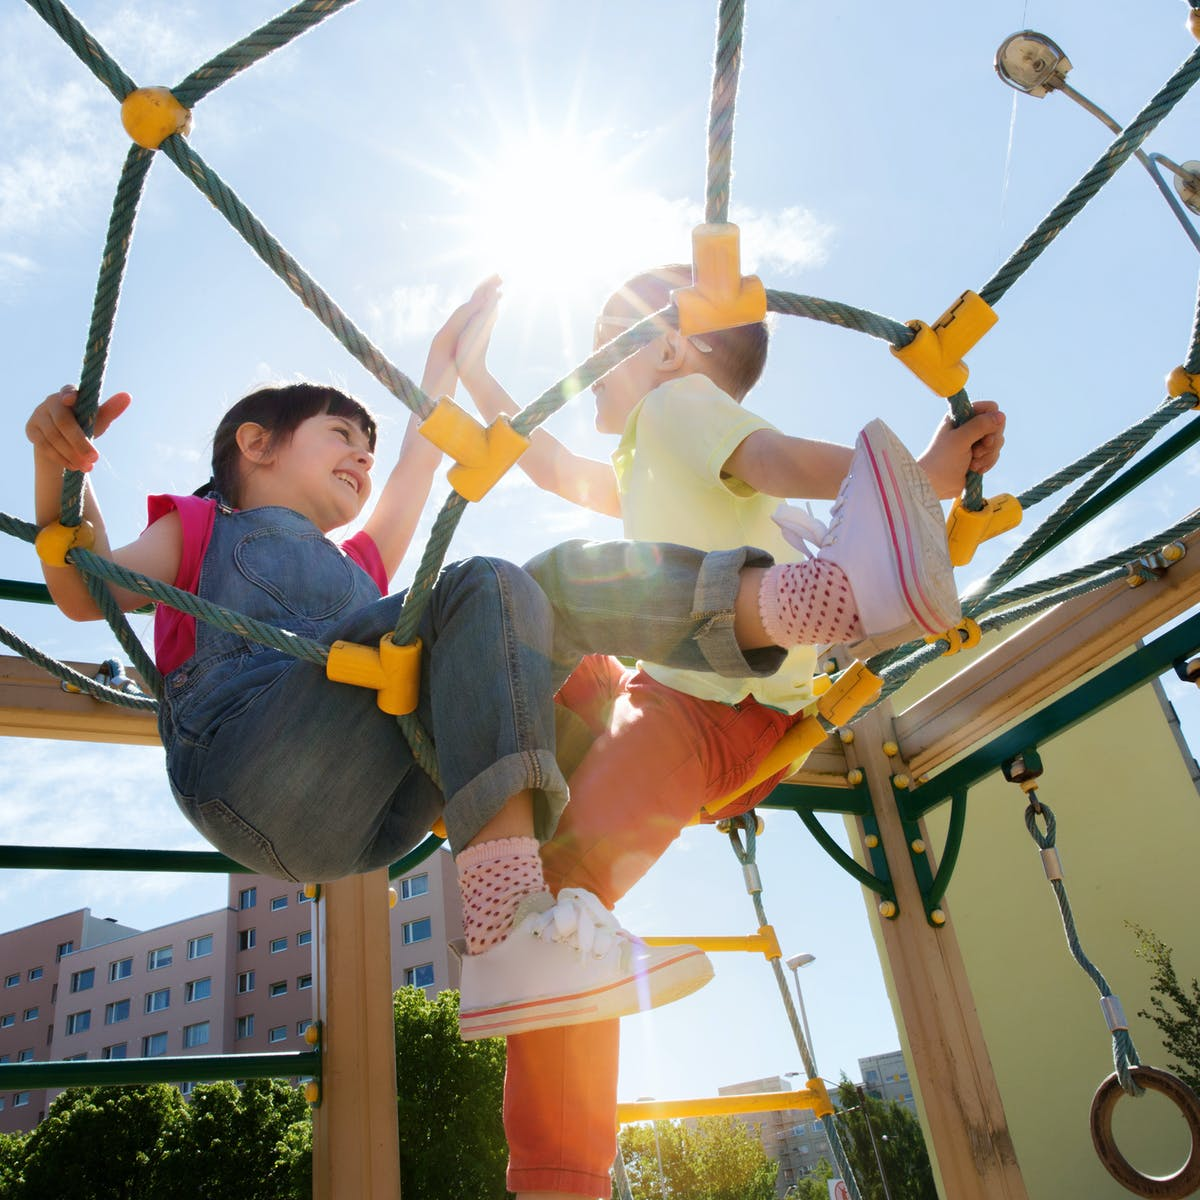 Screen Free School Holiday Activities - Head to the playground